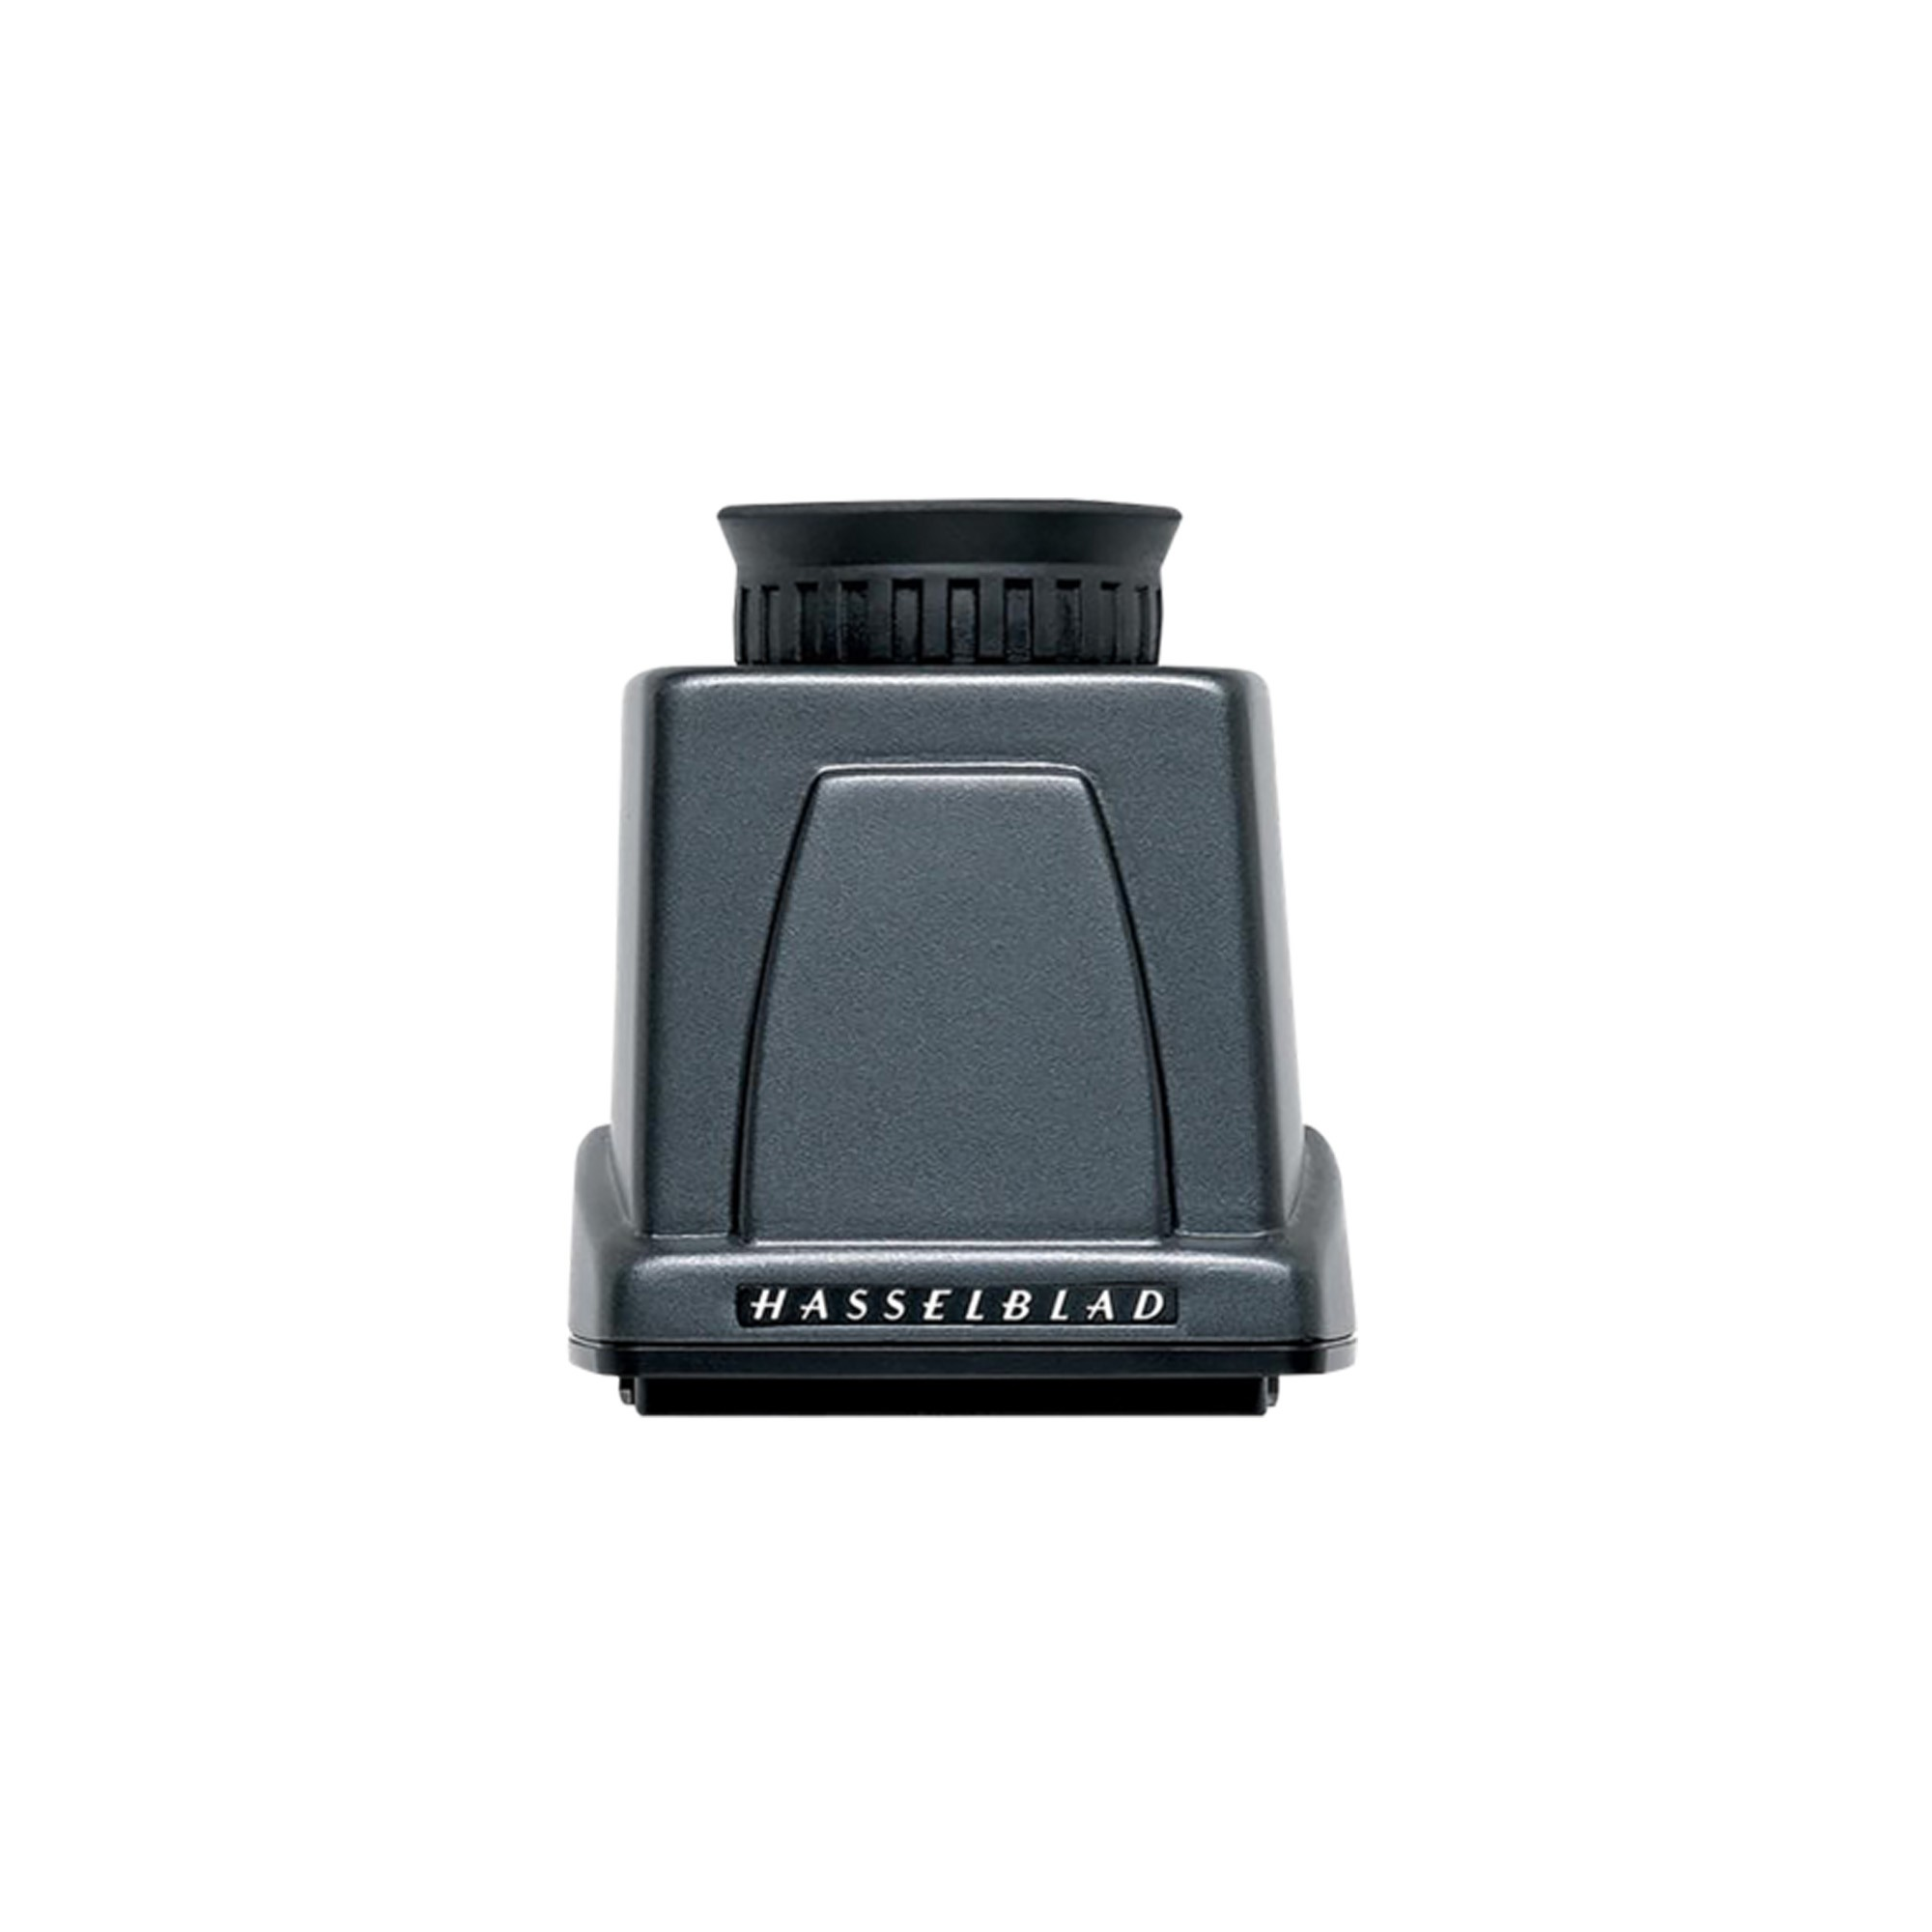 Hasselblad HVM Waist Viewfinder available to rent / verhuur / location at 50.8 Studio • Belgïe, Belgique, Belgium, Hasselblad, Huur, Location, Louer, Photo, Rent, Rental, Strobe, Studio, Verhuur, Video